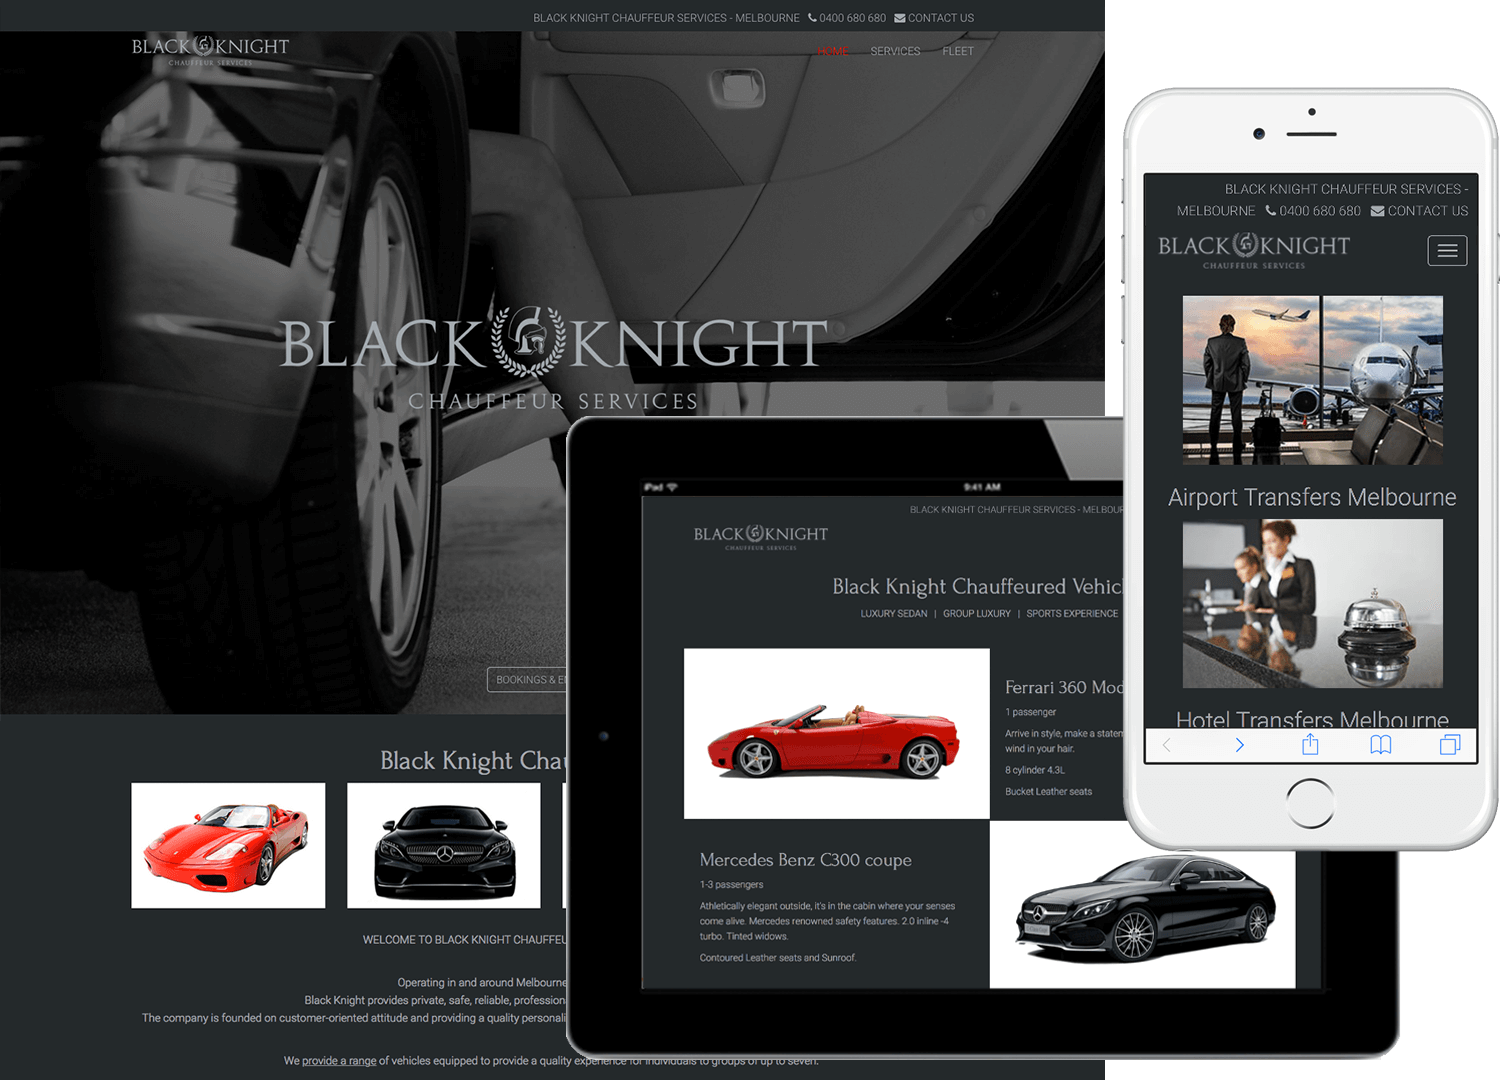 Black Knight Chauffeur Services